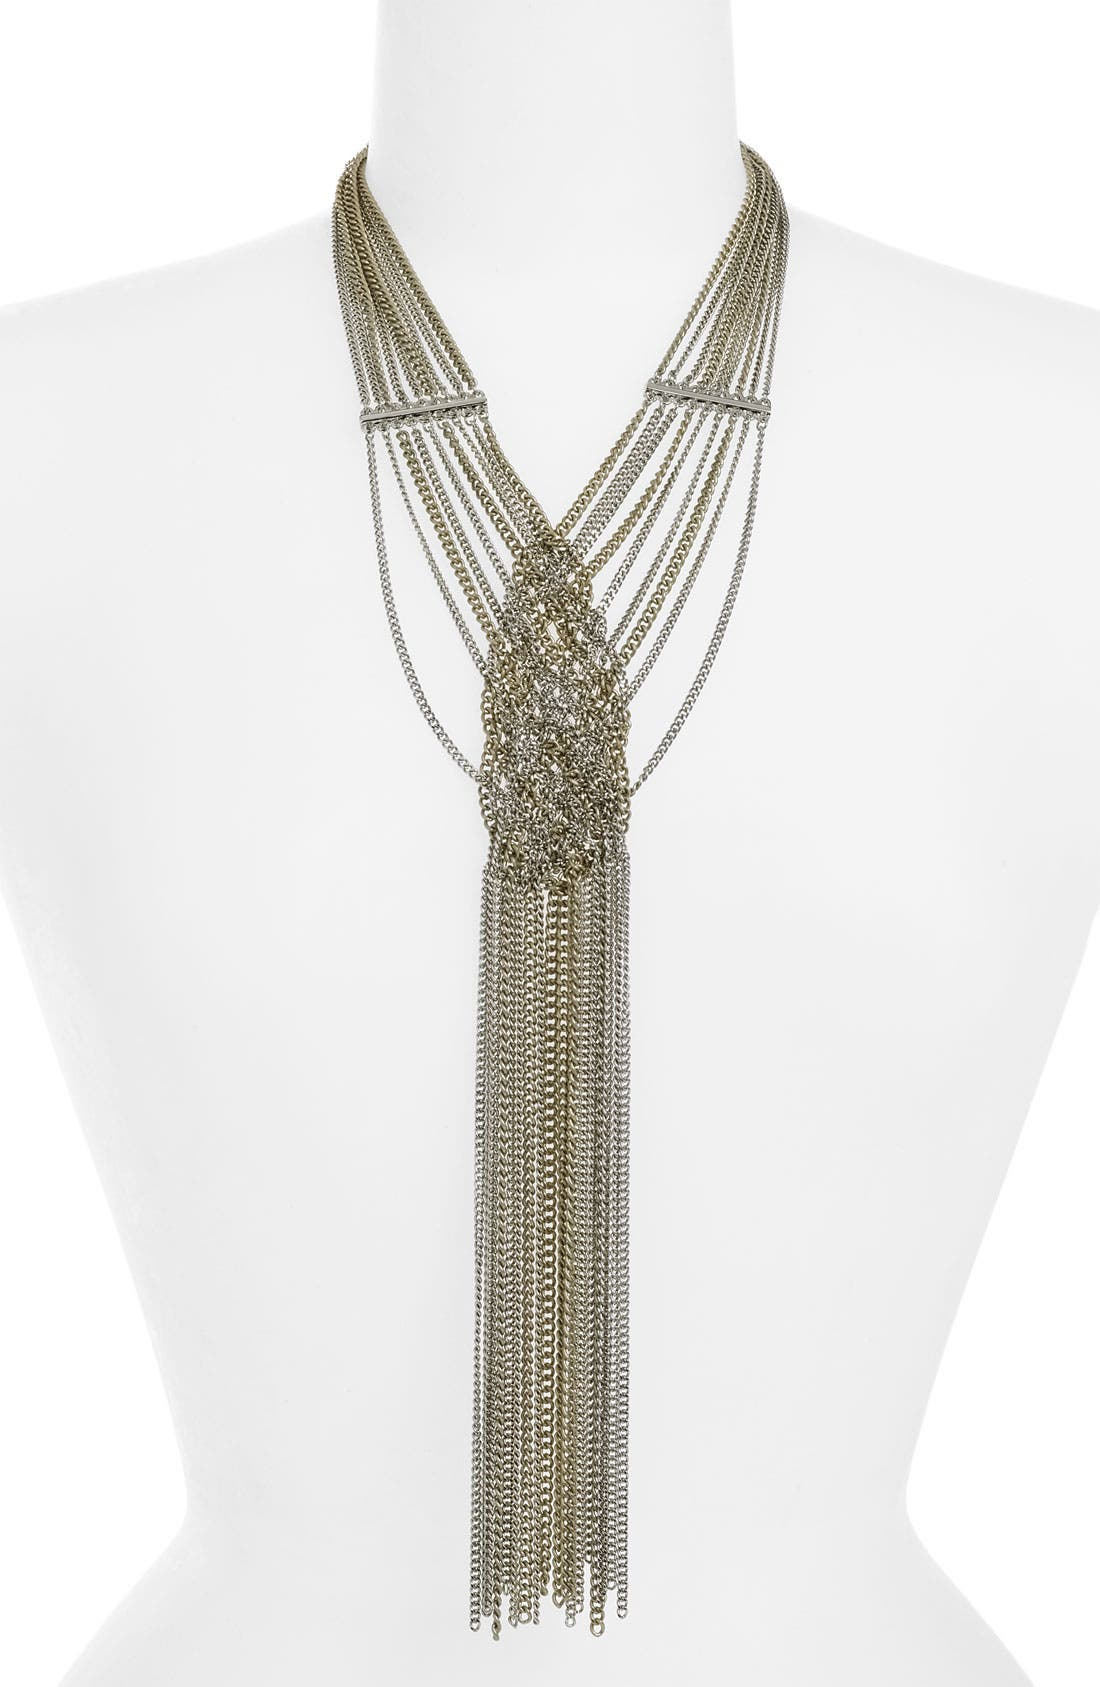 BCBGENERATION, 'Adele' Multi Chain Y-Necklace, Main thumbnail 1, color, 041